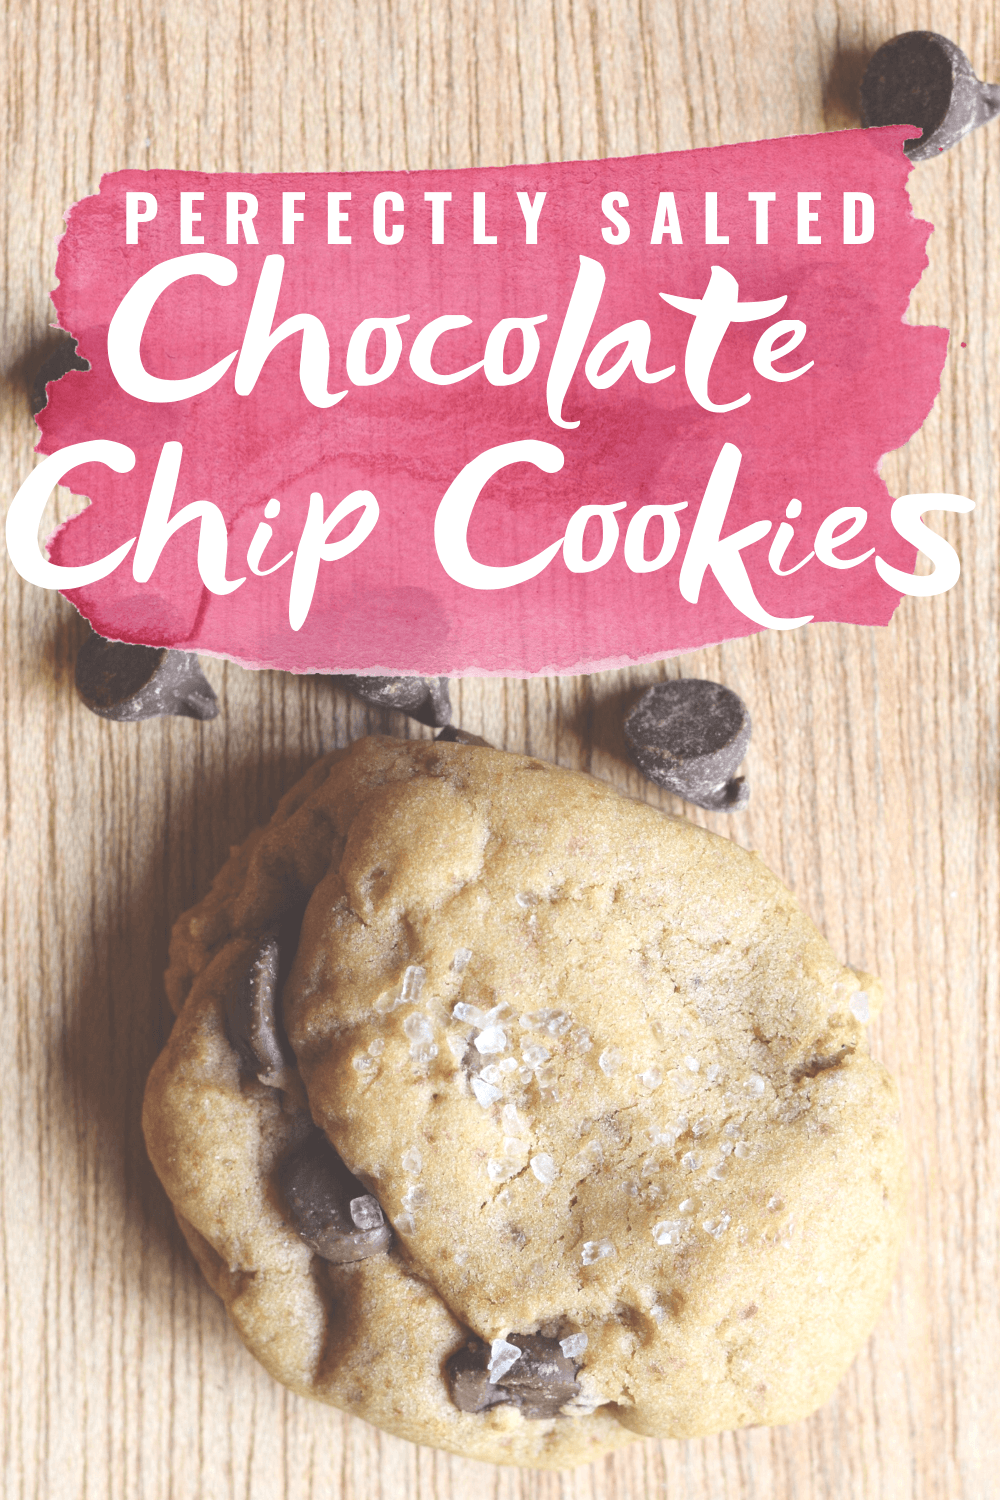 Salted Chocolate Chip Cookie